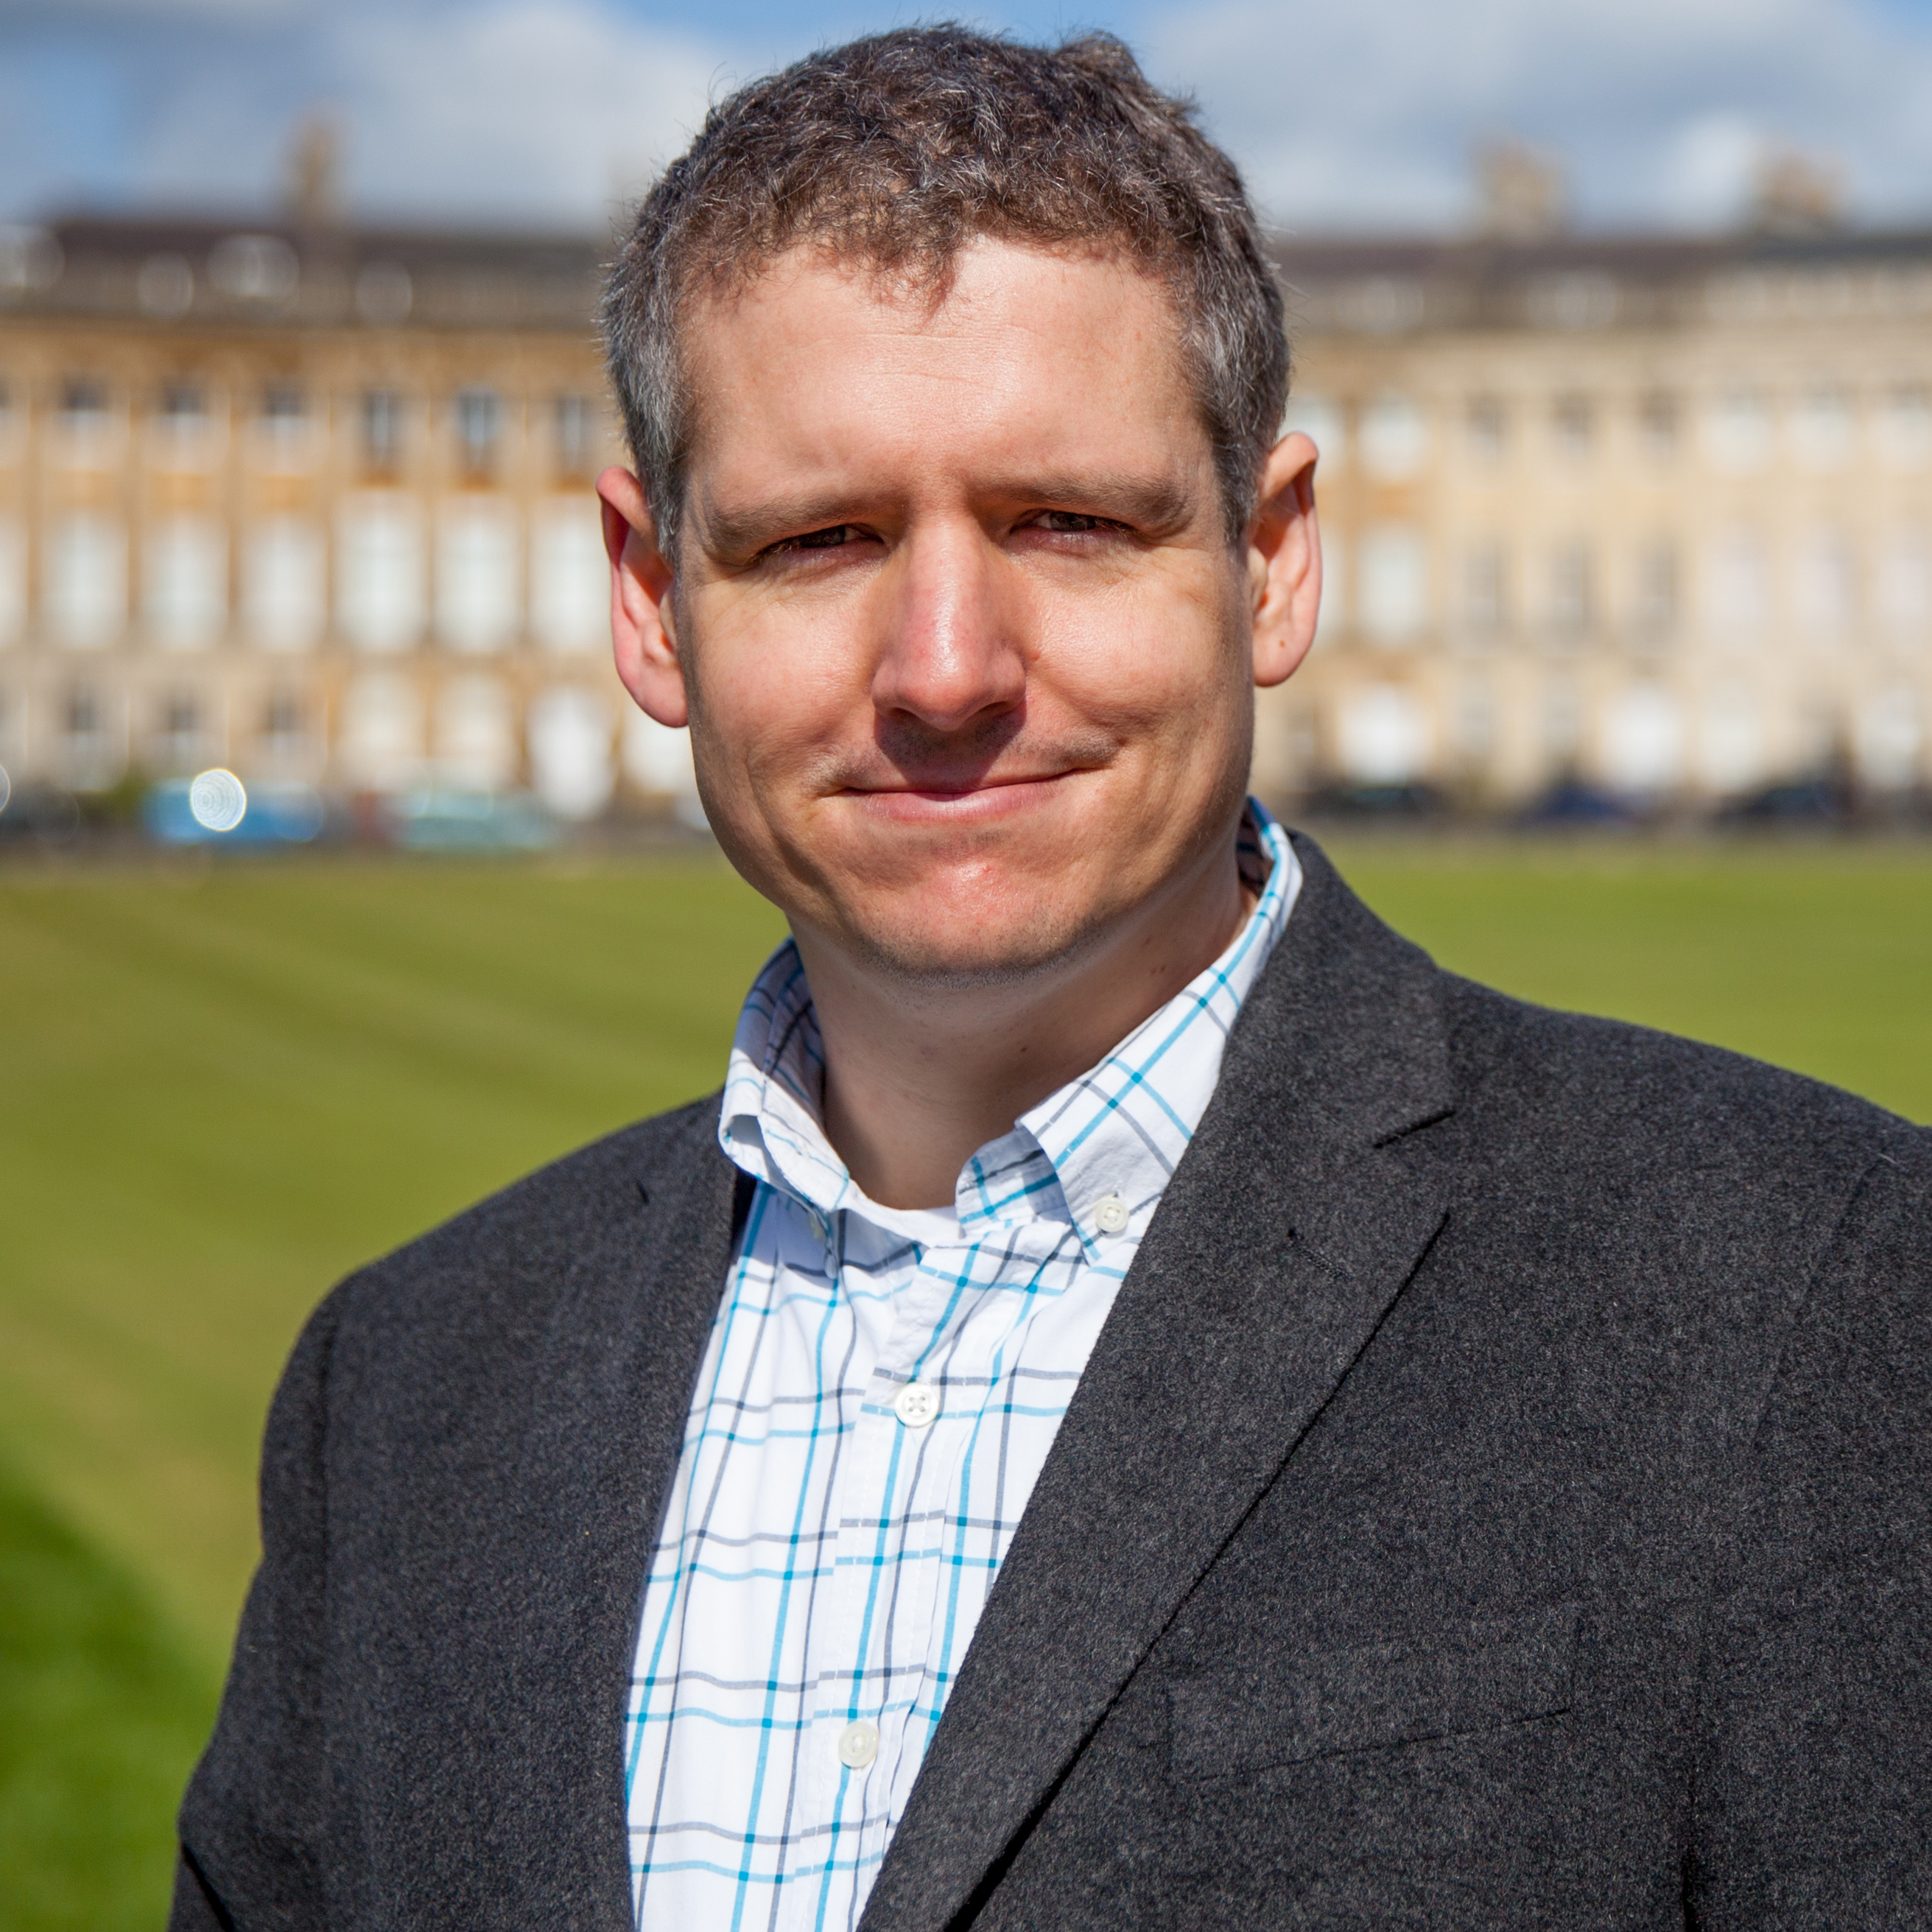 Photograph of Dr Robin Shields standing in front of the Royal Crescent on a sunny day